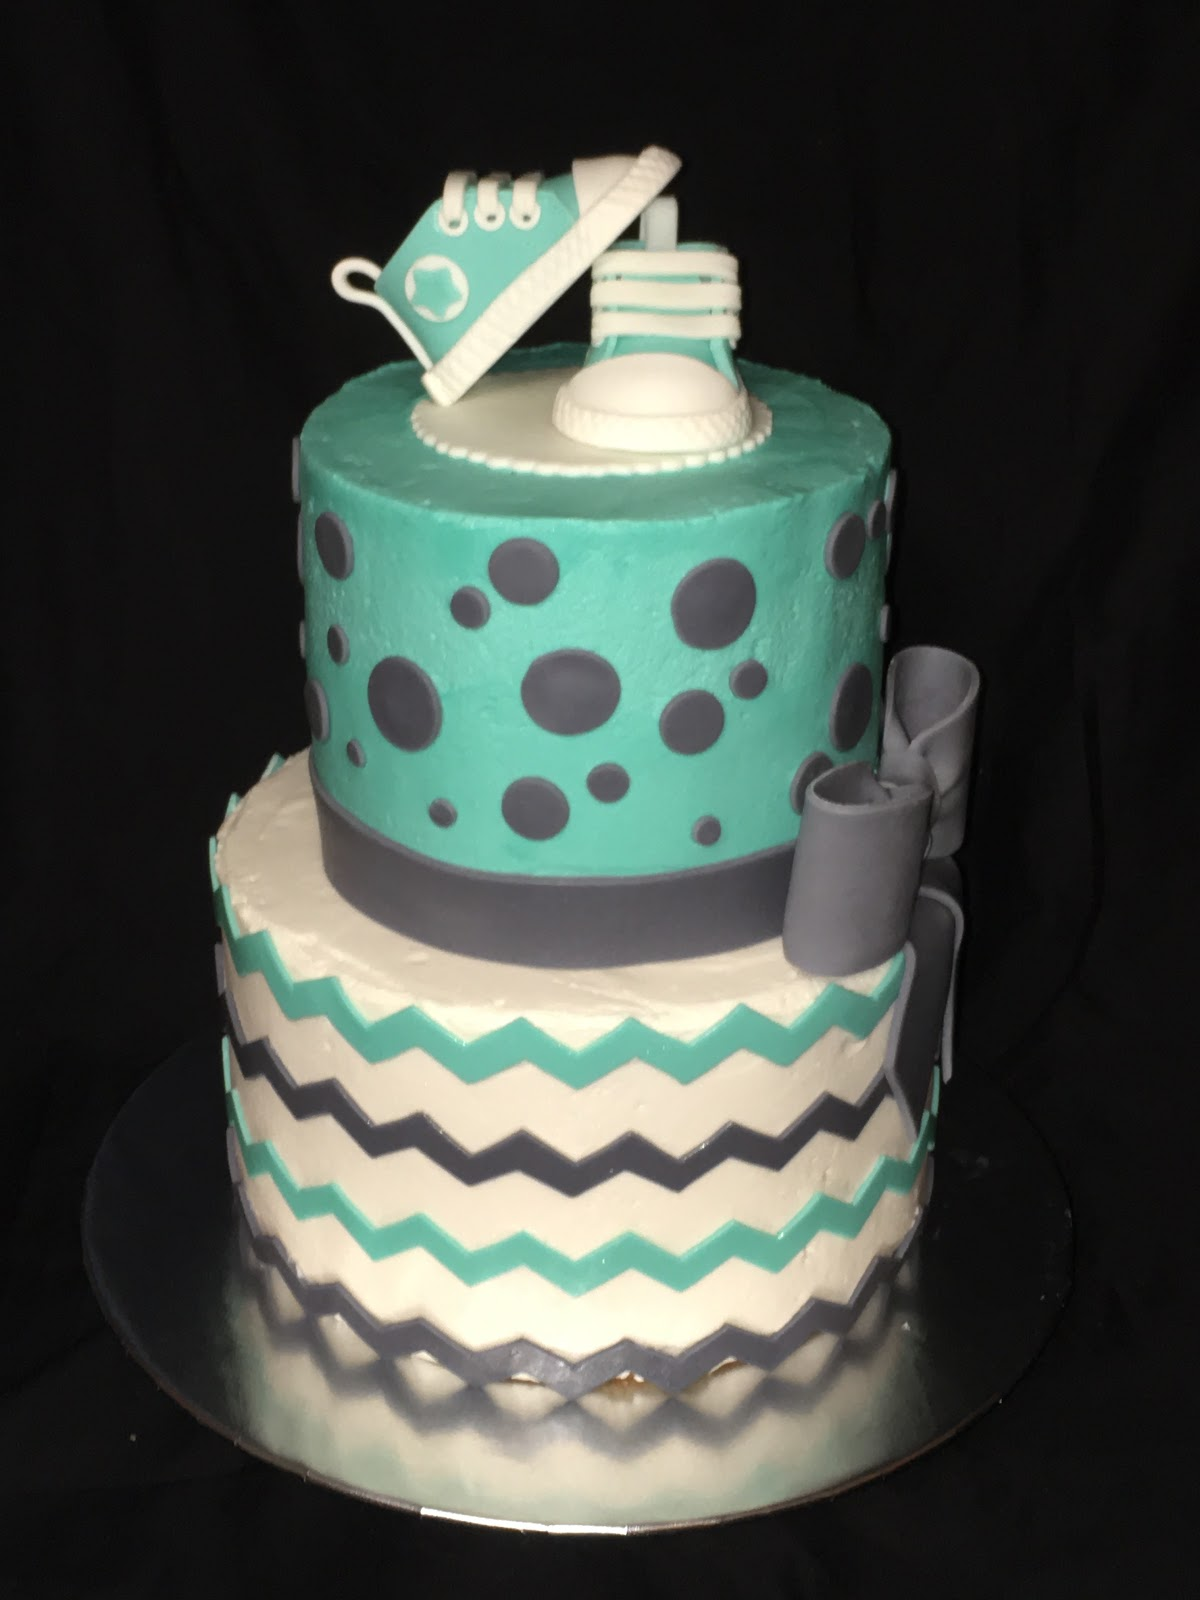 Cakes by Kristen H